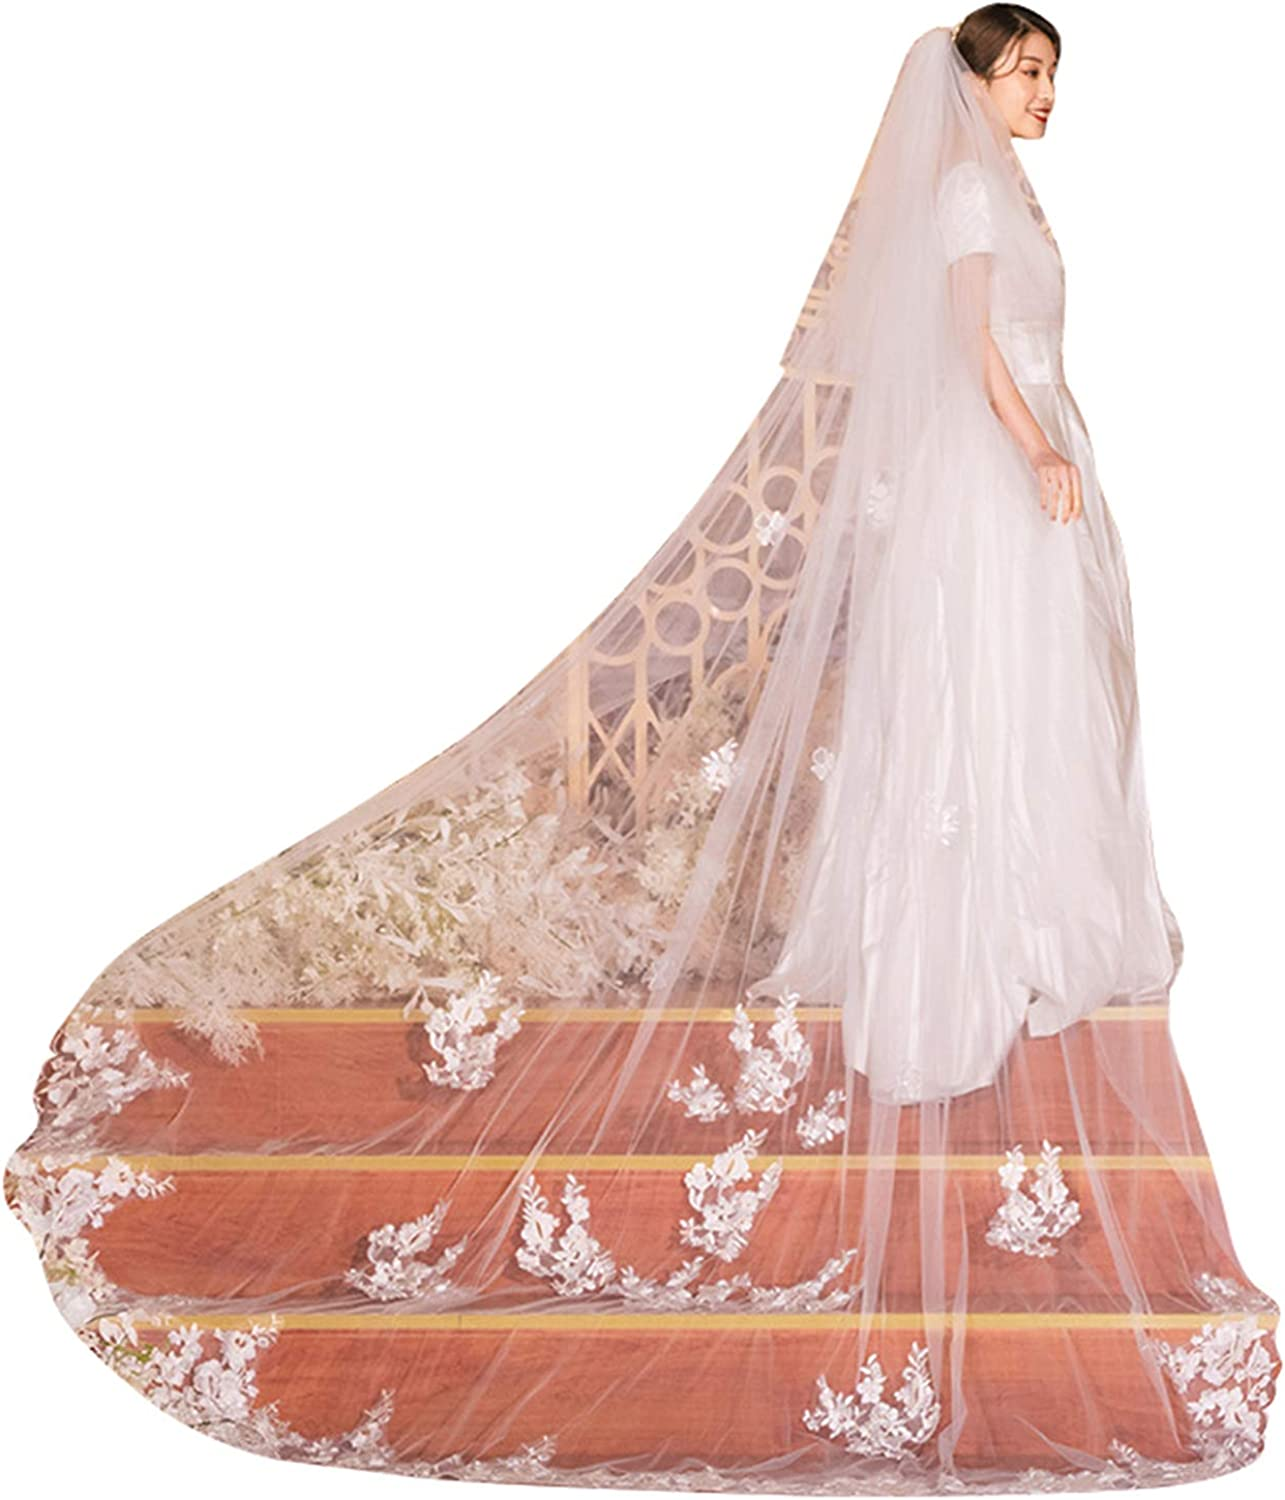 Wedding Veils Long for Brides 2 Tier Lace Cathedral Length Blusher with Comb